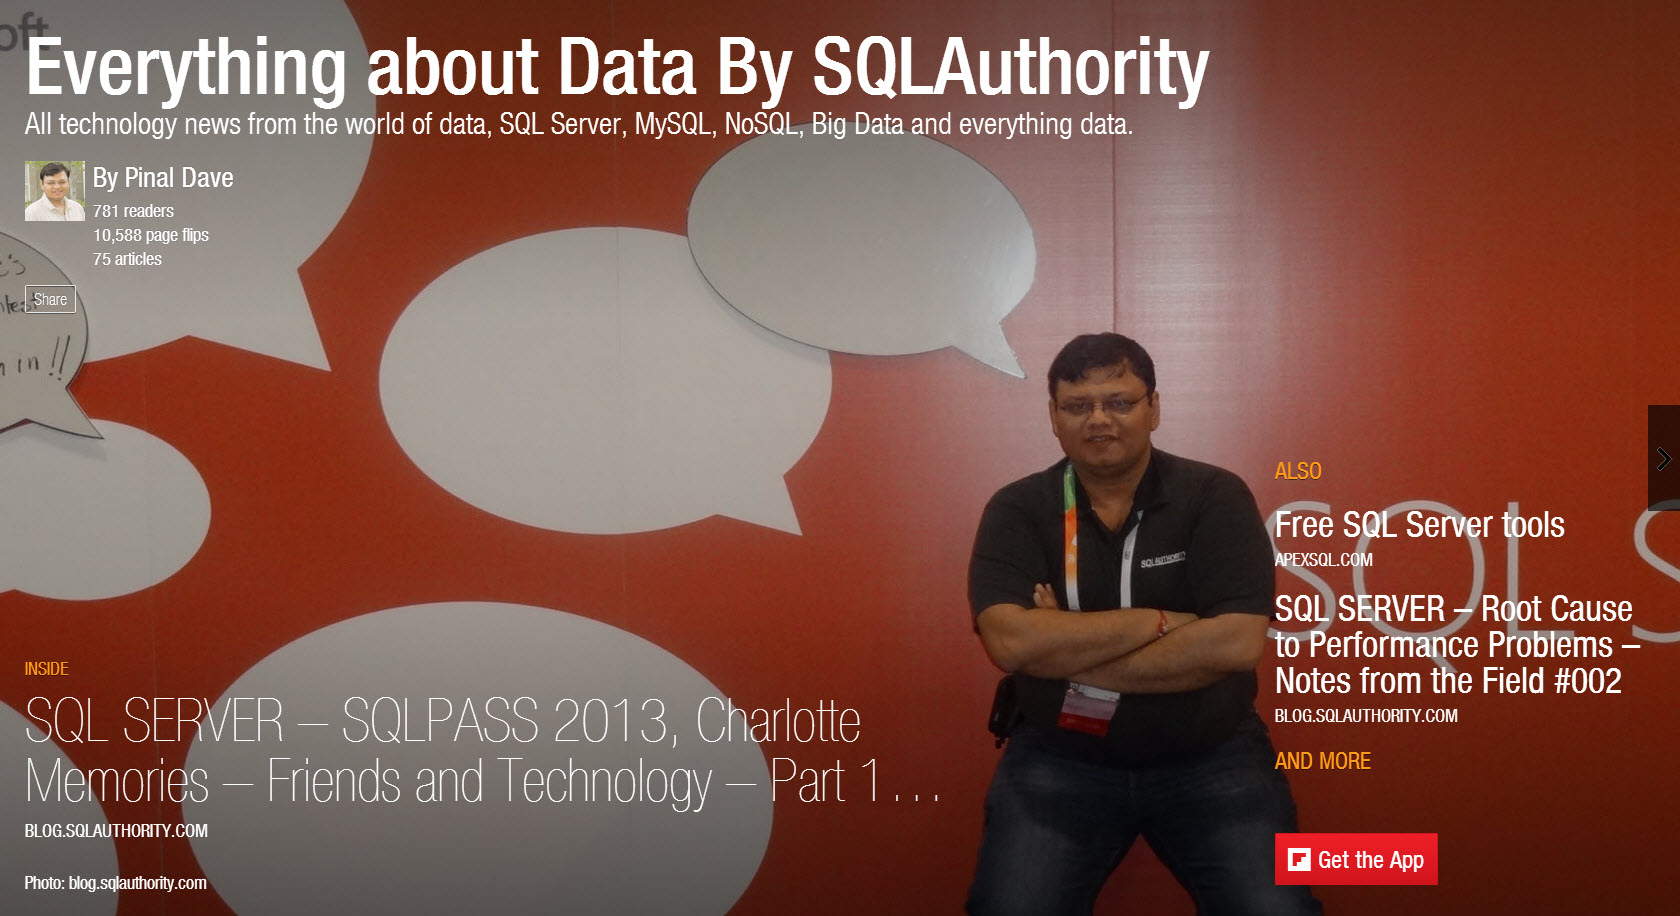 SQL - Everything about Data Magazine - FREE to Subscribe magazine